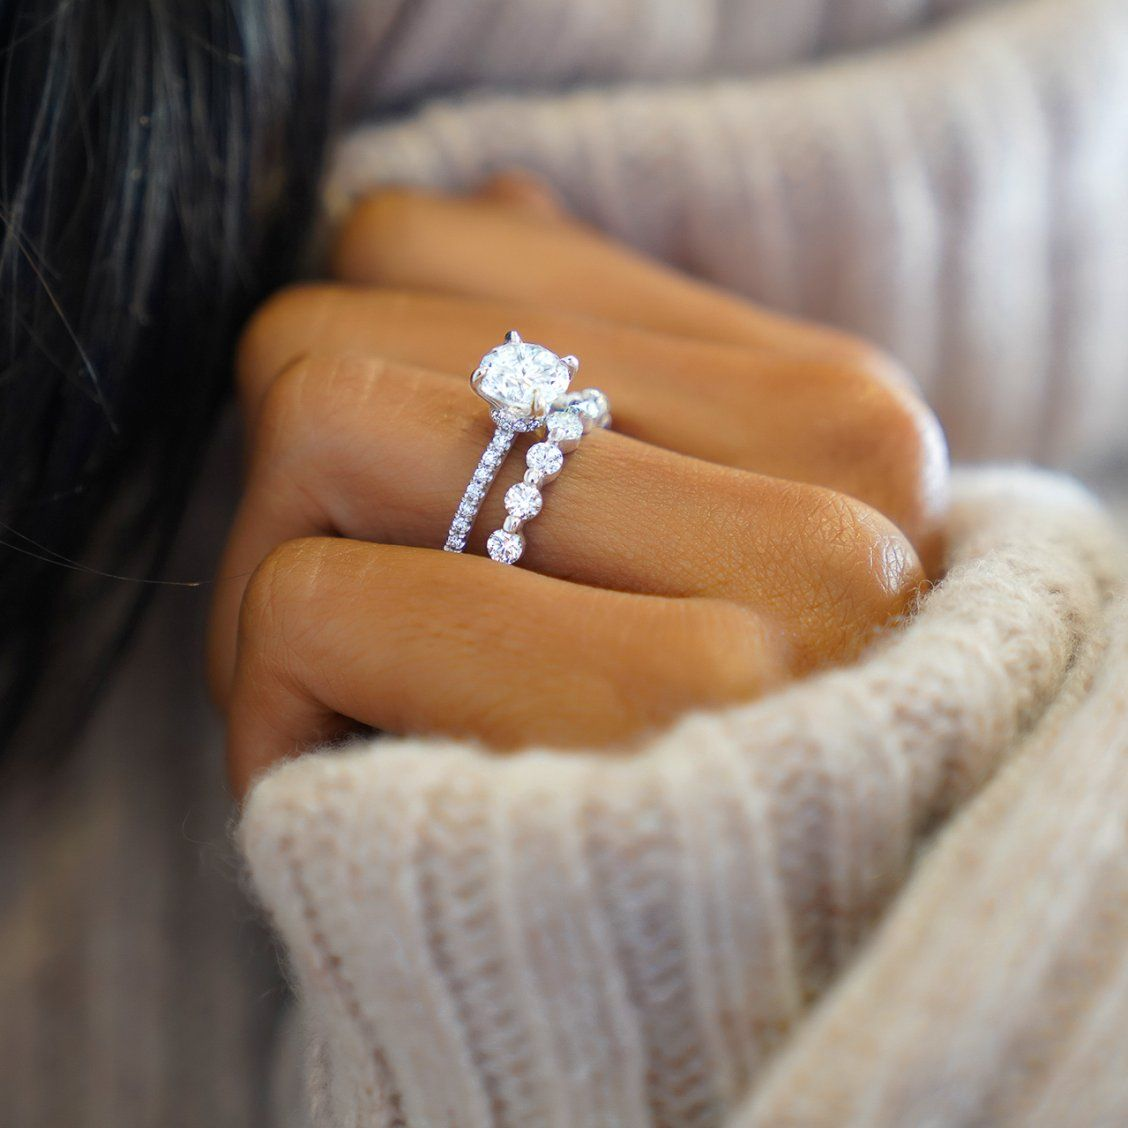 2020 Engagement Ring Trends Brilliant Earth In 2020 Trending Engagement Rings Top Engagement Rings Popular Engagement Rings